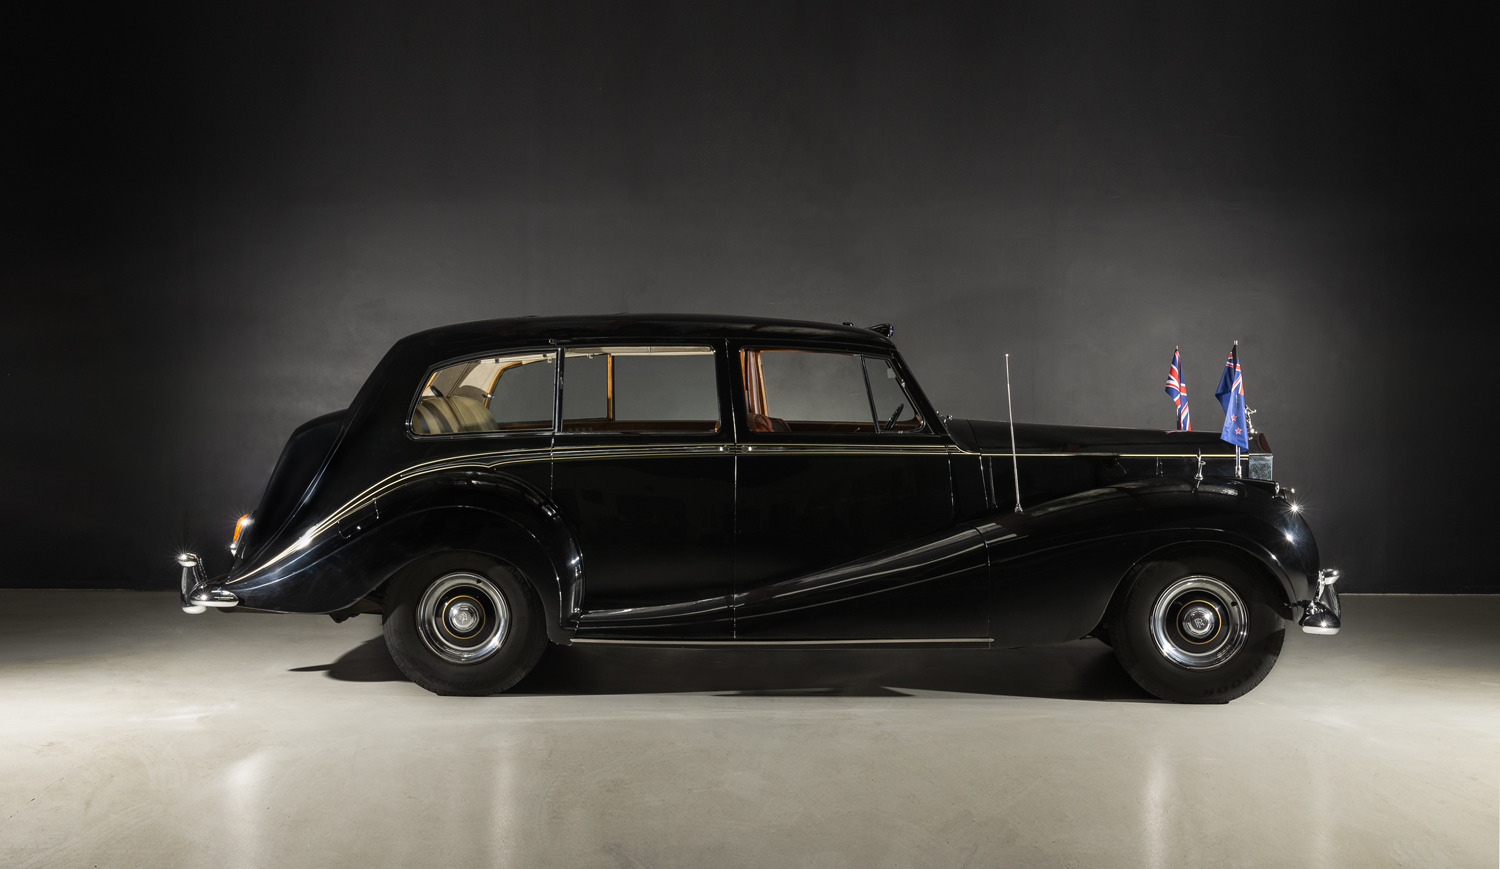 Queen's limo will remain in NZ after sale at rare classic car collection auction